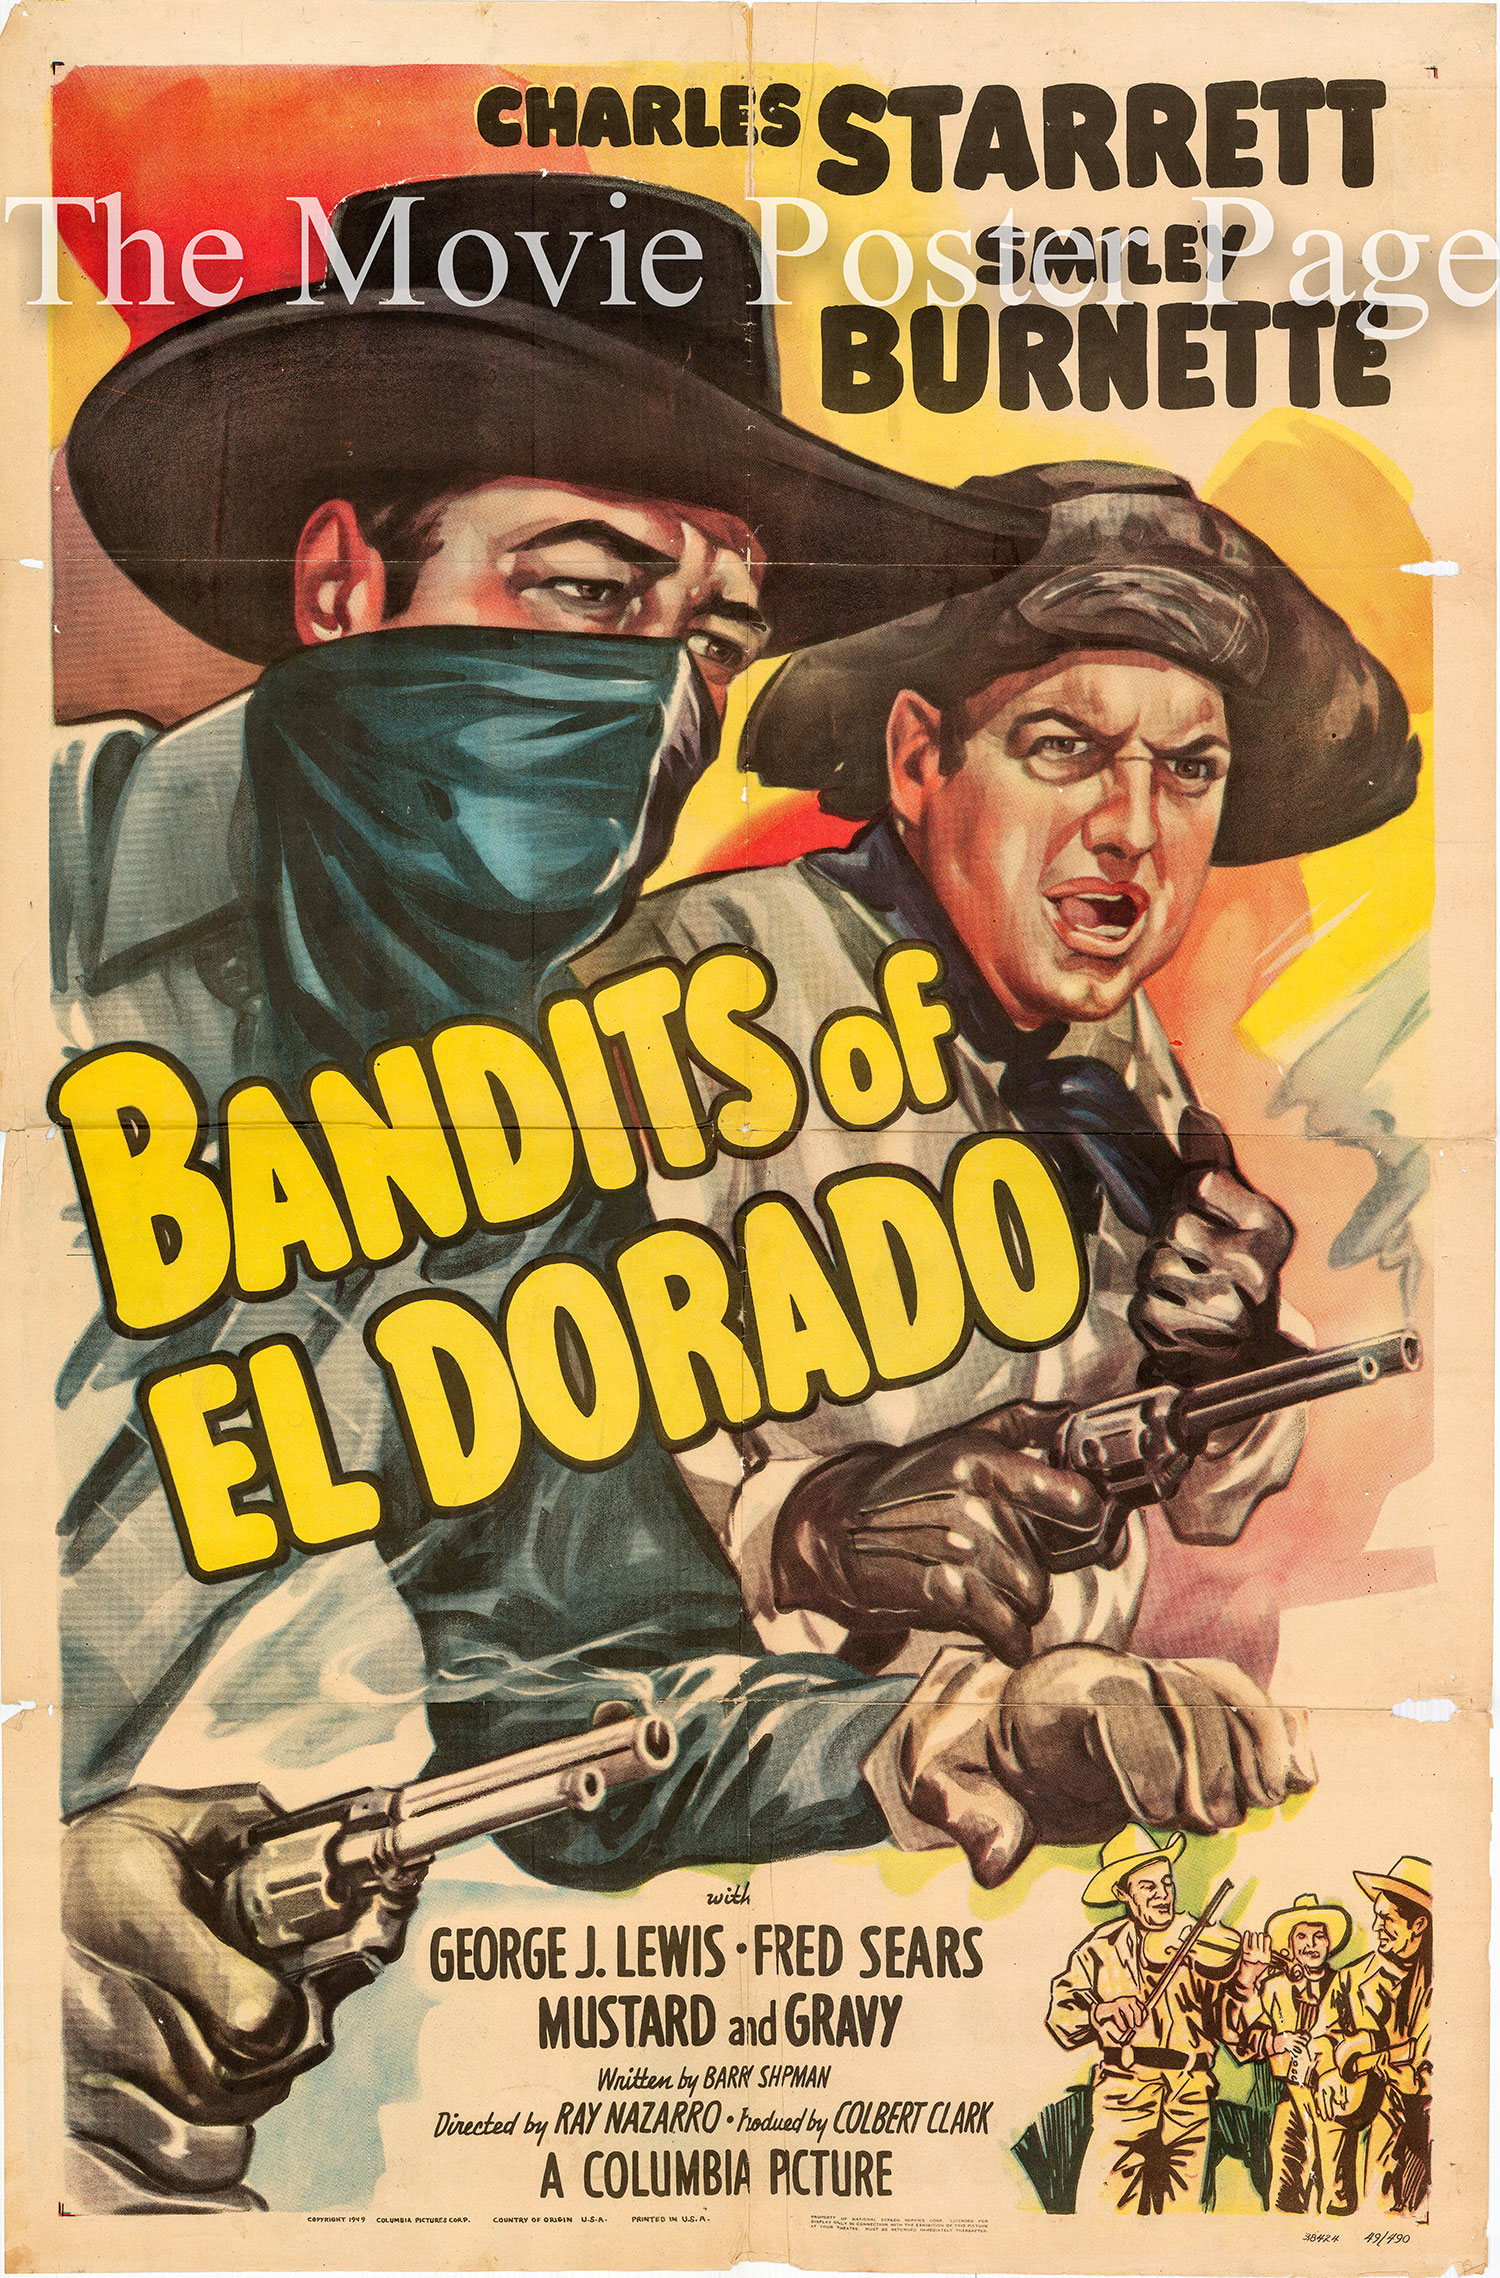 Pictured is a US one-sheet promotional poster for the 1949 Ray Nazarro film Bandits of El Dorado starring Charles Starrett.